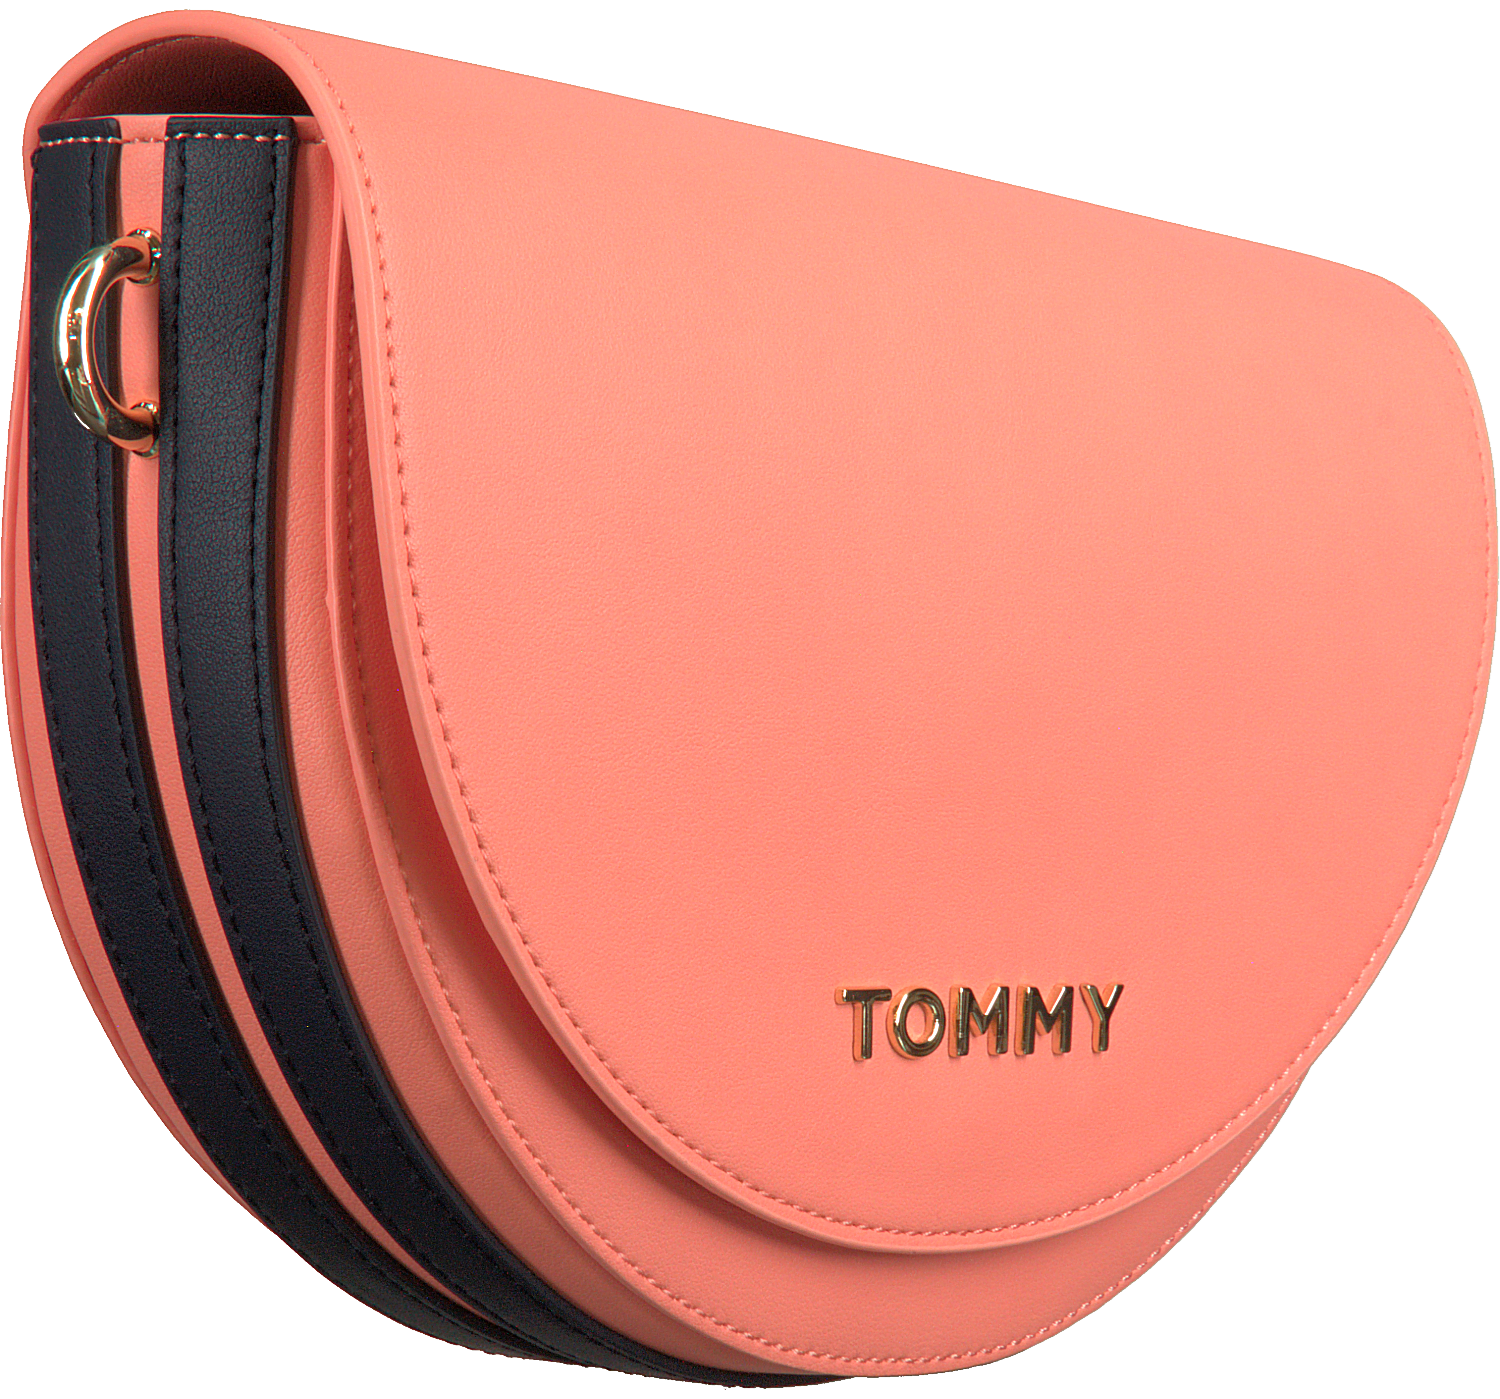 Oranje TOMMY HILFIGER Schoudertas TOMMY STAPLE SADDLE | Omoda